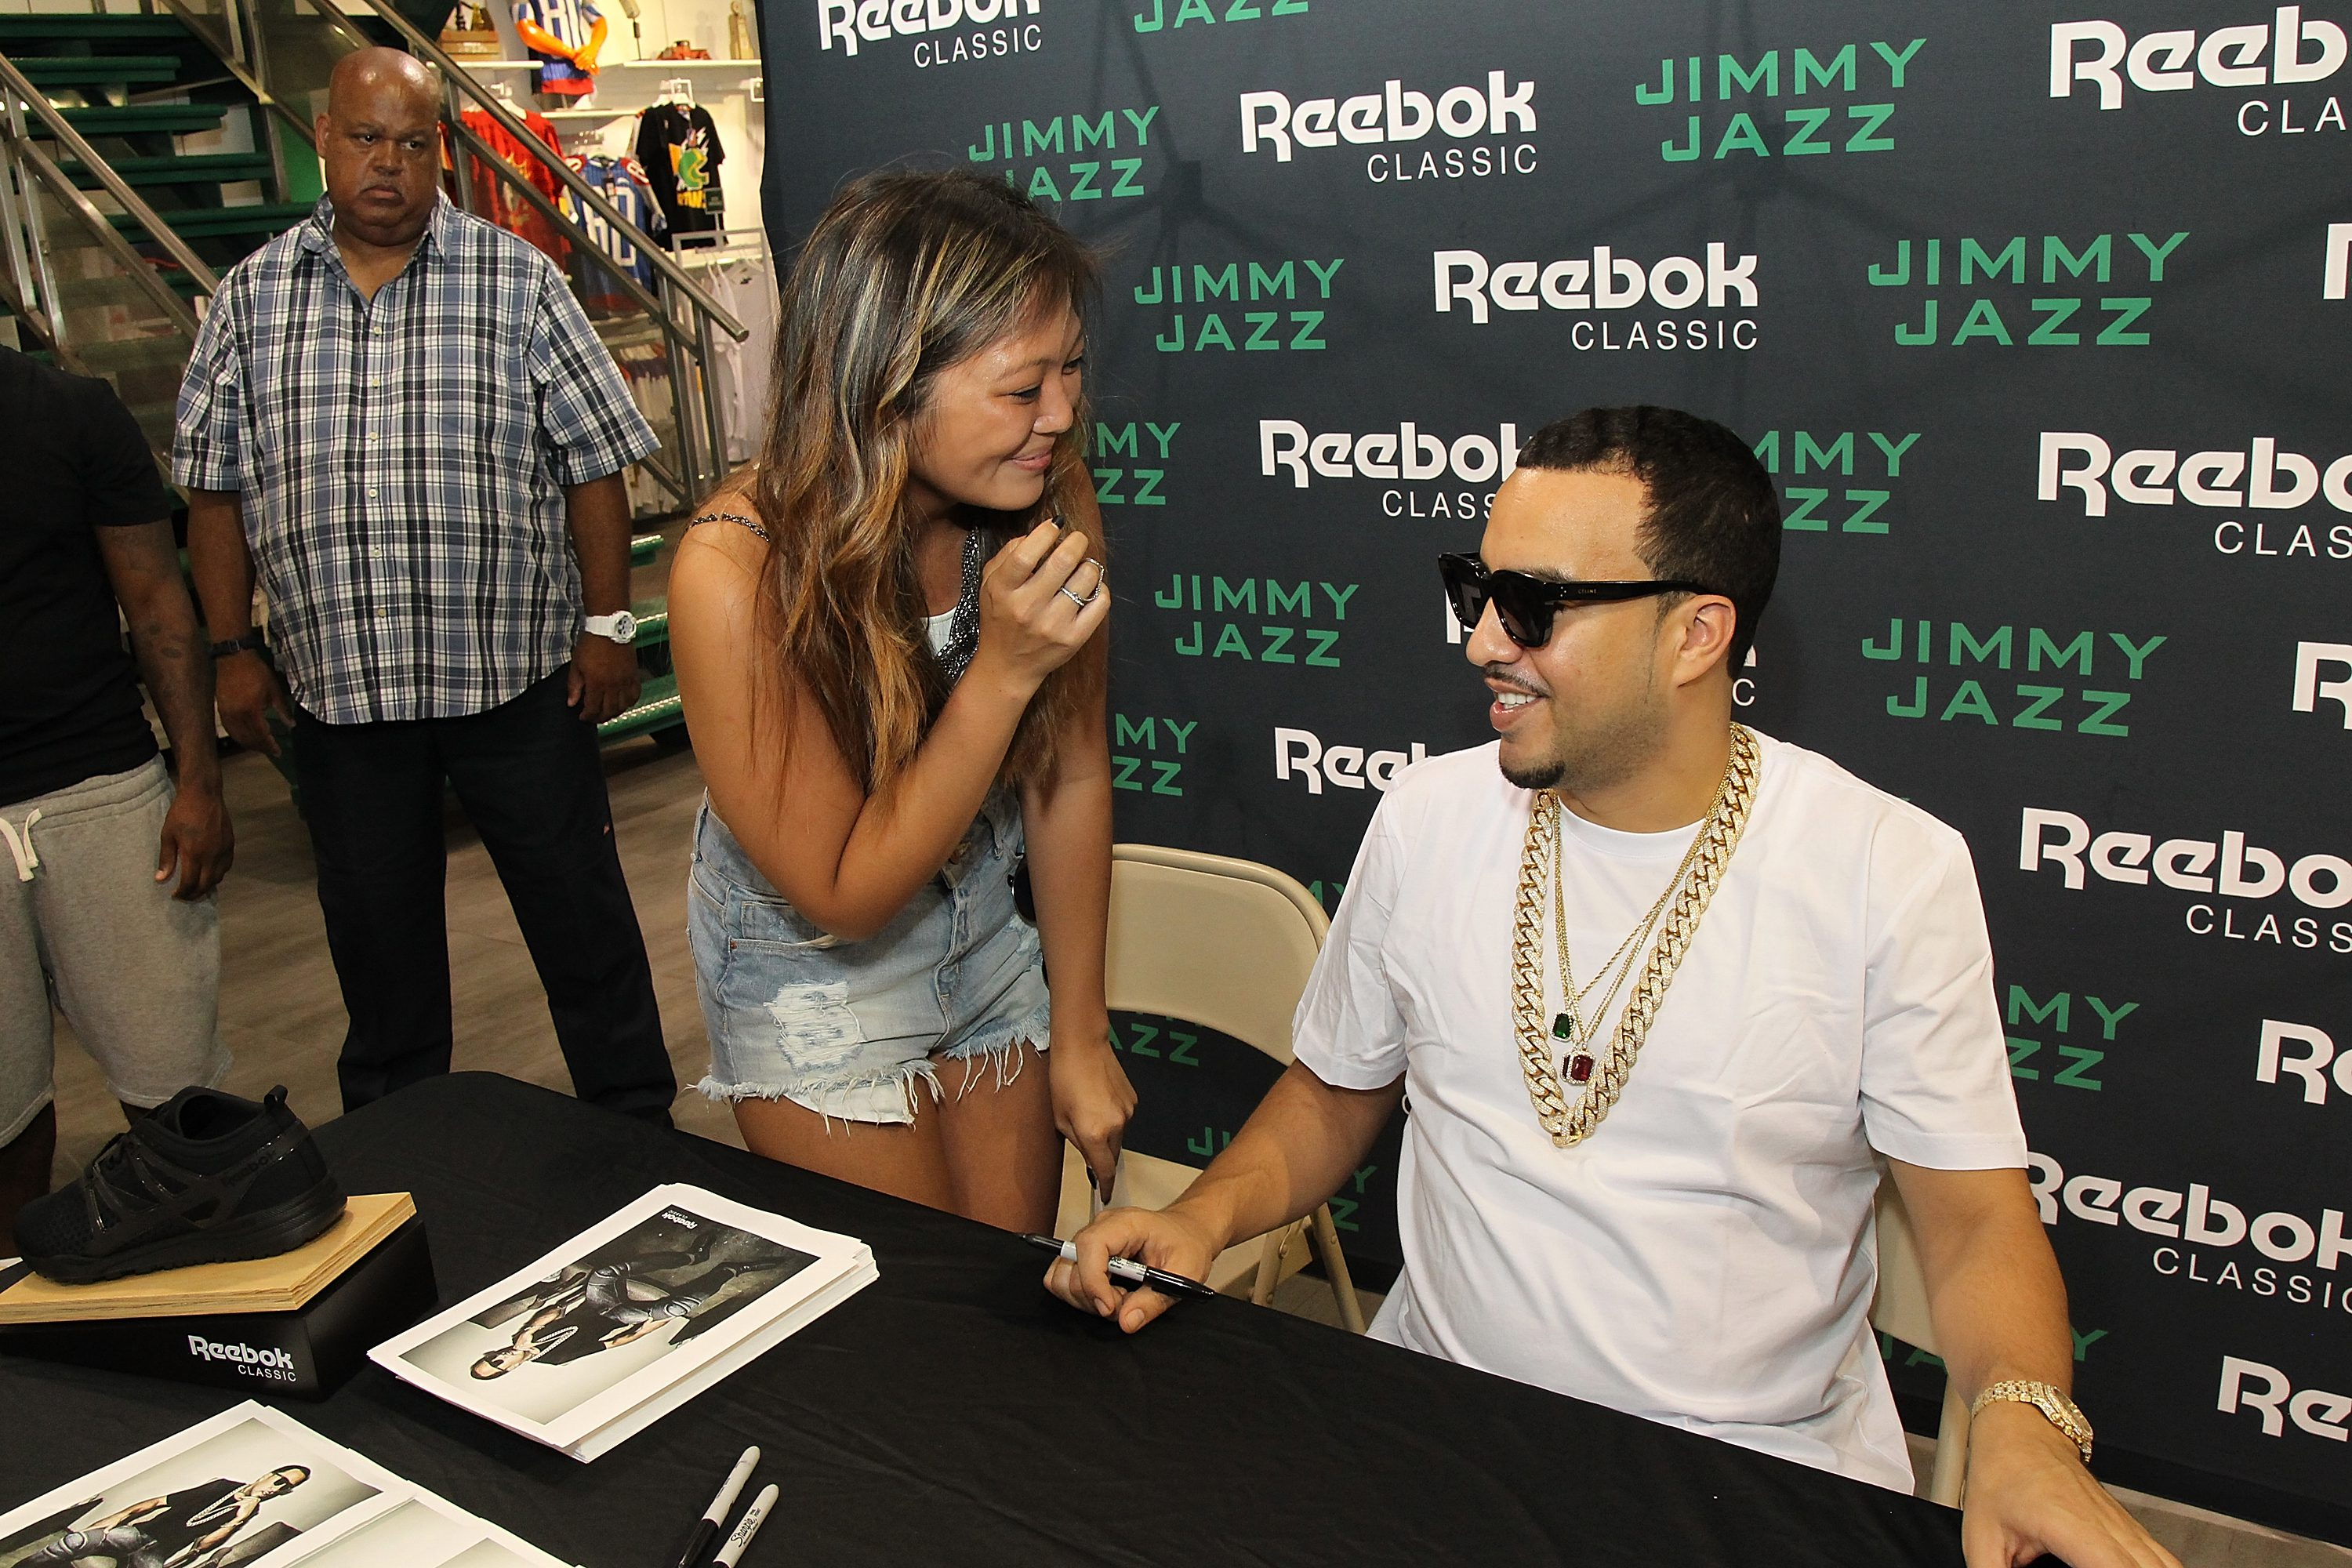 NEW YORK, NY - AUGUST 30:  French Montana poses with a fan during the Launch of the Ventilator ST at Jimmy Jazz in Harlem on August 30, 2015 in New York City.  (Photo by Bennett Raglin/Getty Images for Reebok)